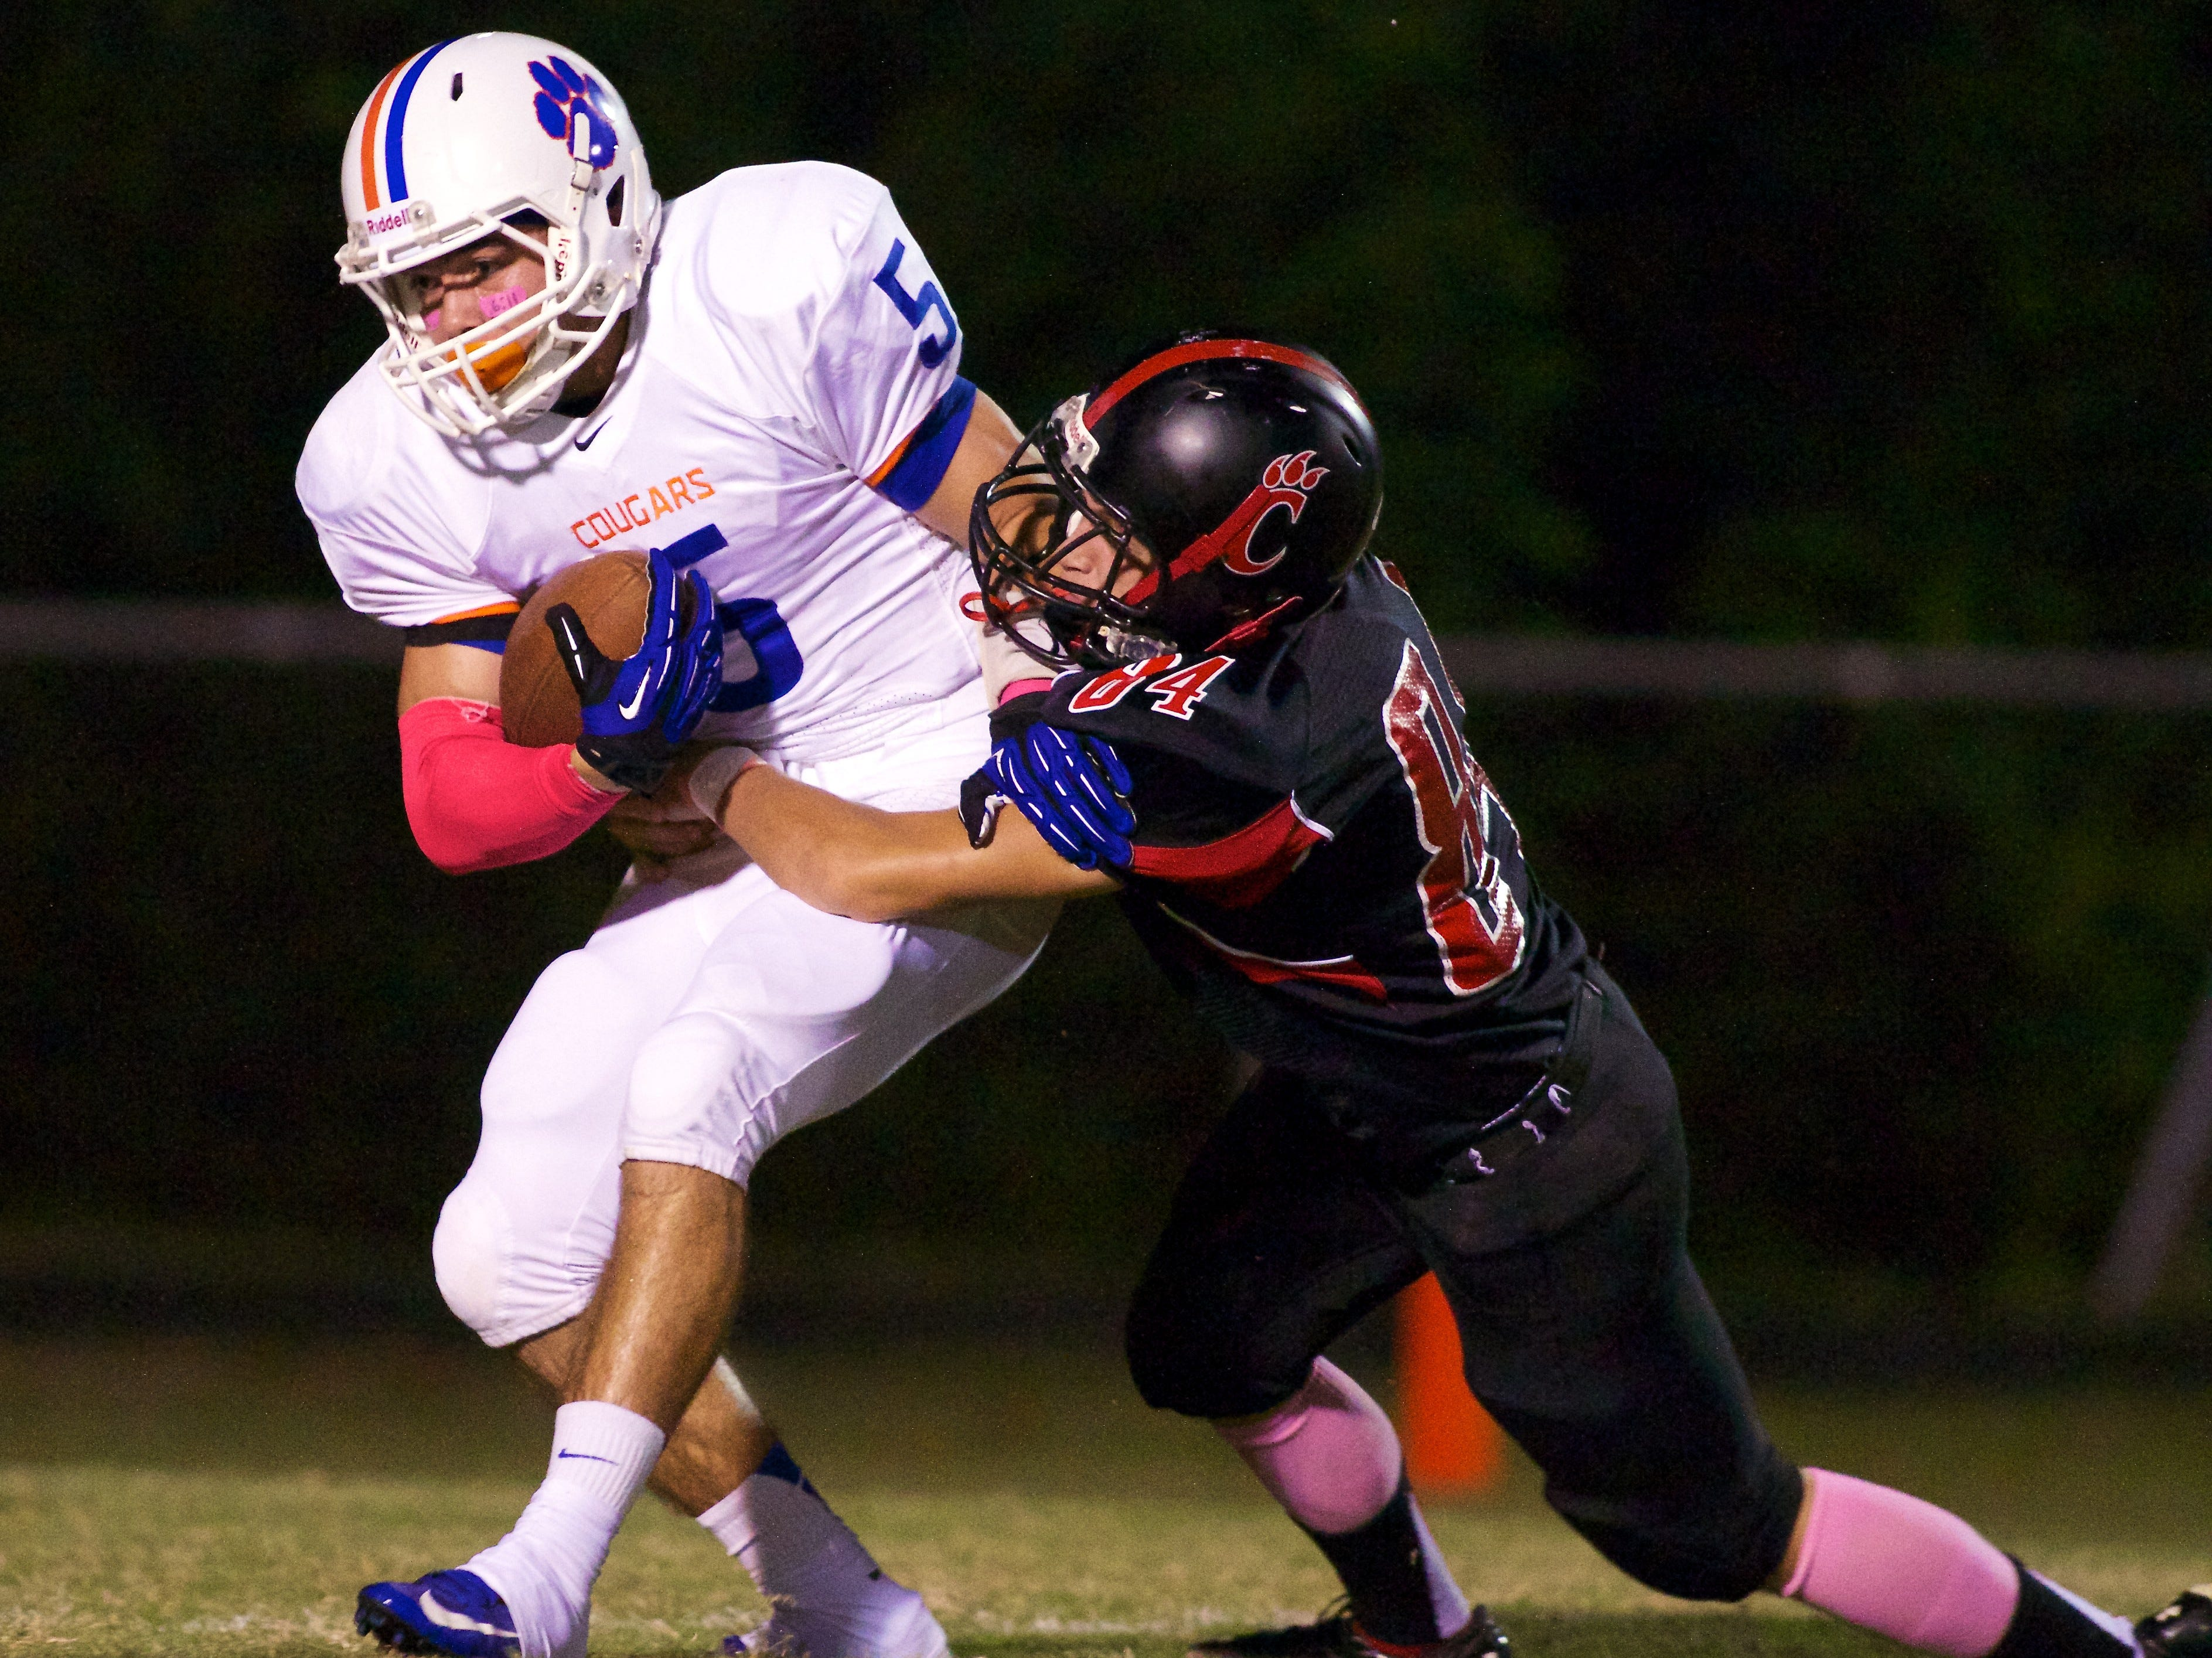 Campbell County's Bo Farris, left, tries to get away from Central's Josh Smith on Friday, October 5, 2012 at Central High School.